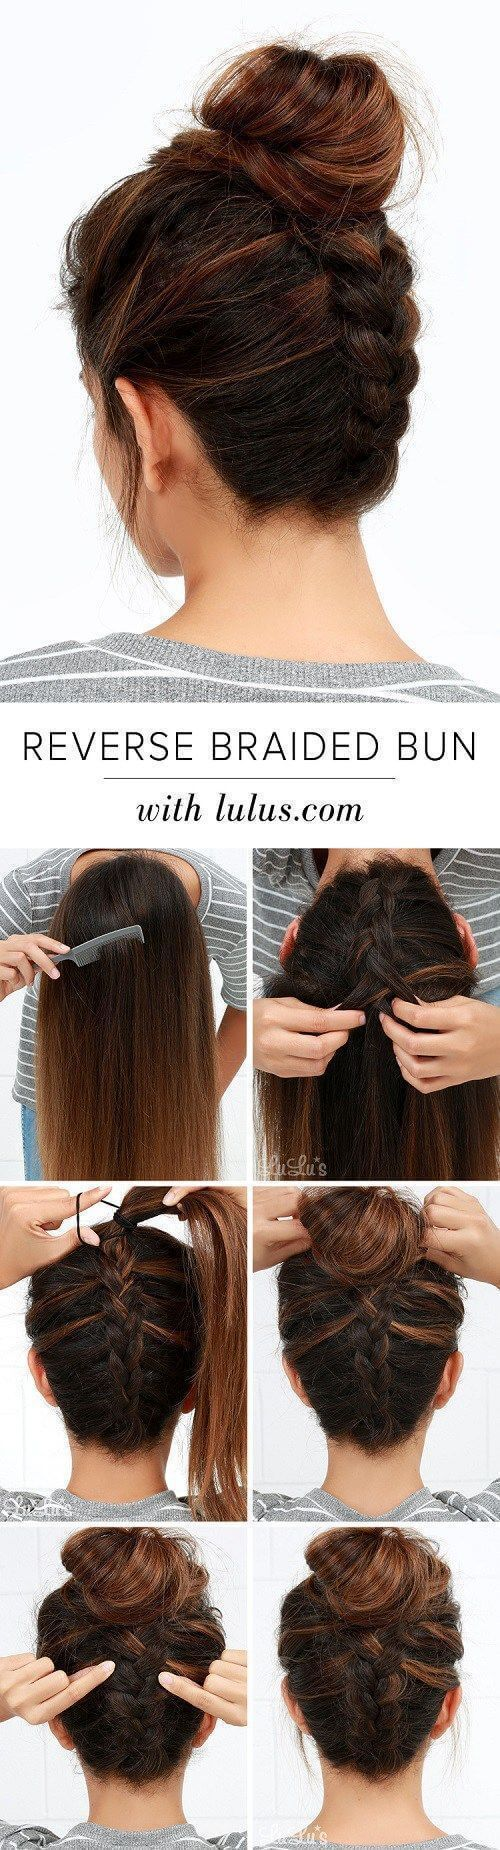 step for interlacing a reverse braid top knot #braidedtopknots step for interlacing a reverse braid top knot -  - #frisuren #braidedtopknots step for interlacing a reverse braid top knot #braidedtopknots step for interlacing a reverse braid top knot -  - #frisuren #braidedtopknots step for interlacing a reverse braid top knot #braidedtopknots step for interlacing a reverse braid top knot -  - #frisuren #braidedtopknots step for interlacing a reverse braid top knot #braidedtopknots step for inter #braidedtopknots